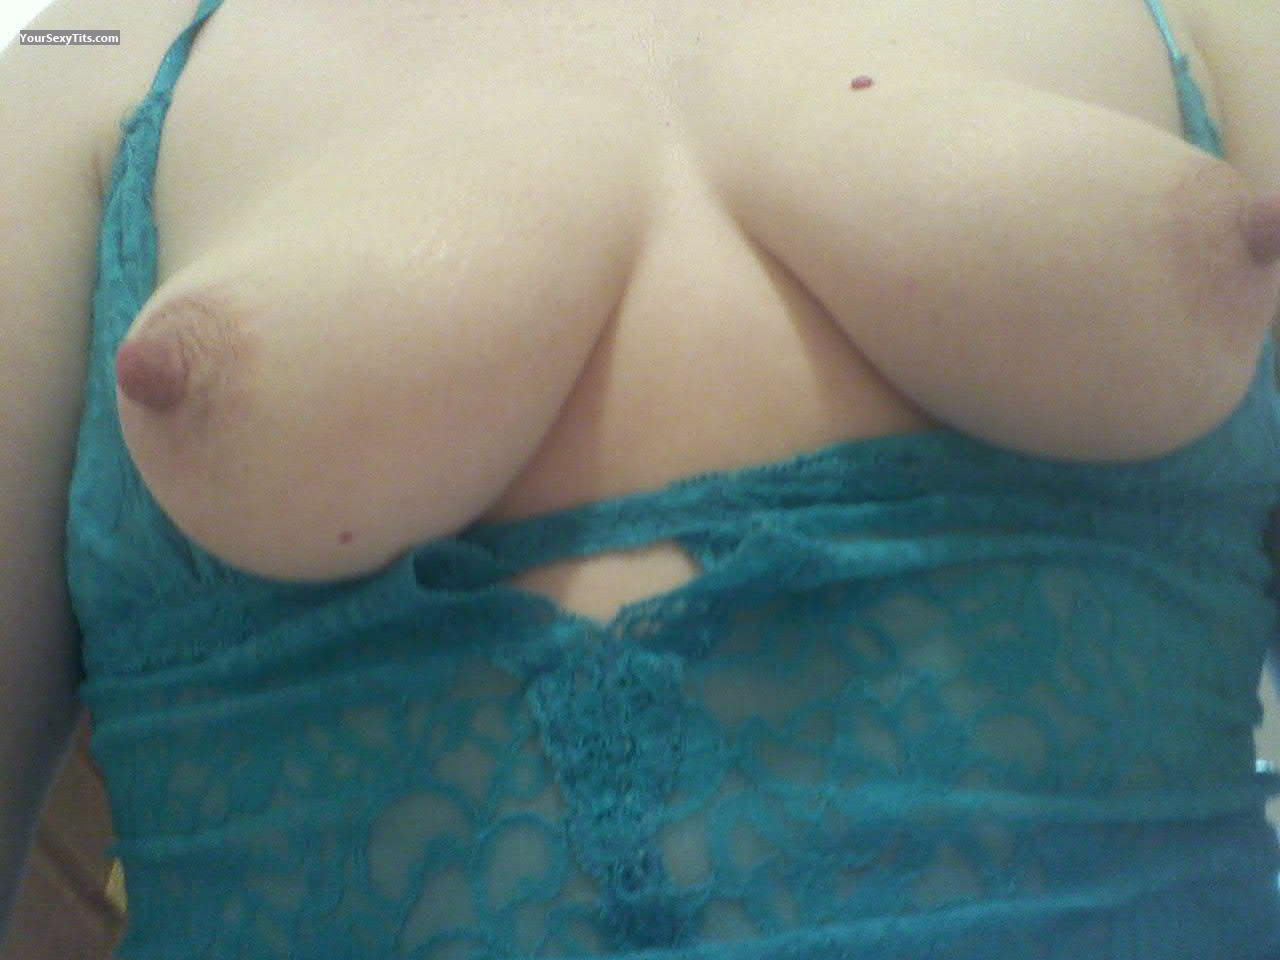 Medium Tits Of My Wife Selfie by Little Momma